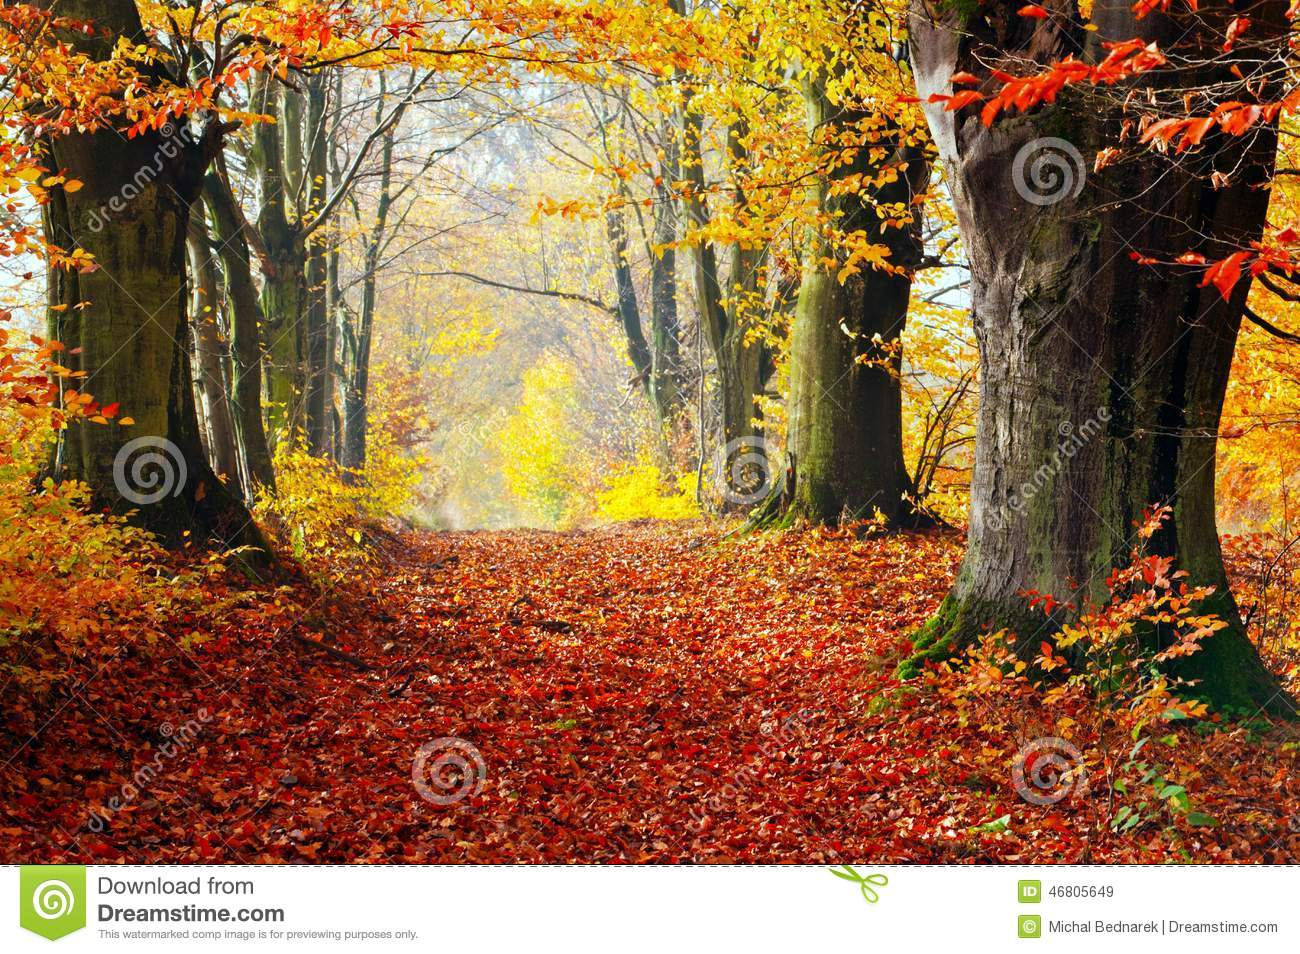 Autumn, Fall Forest. Path Of Red Leaves Towards Light. Stock Photo.